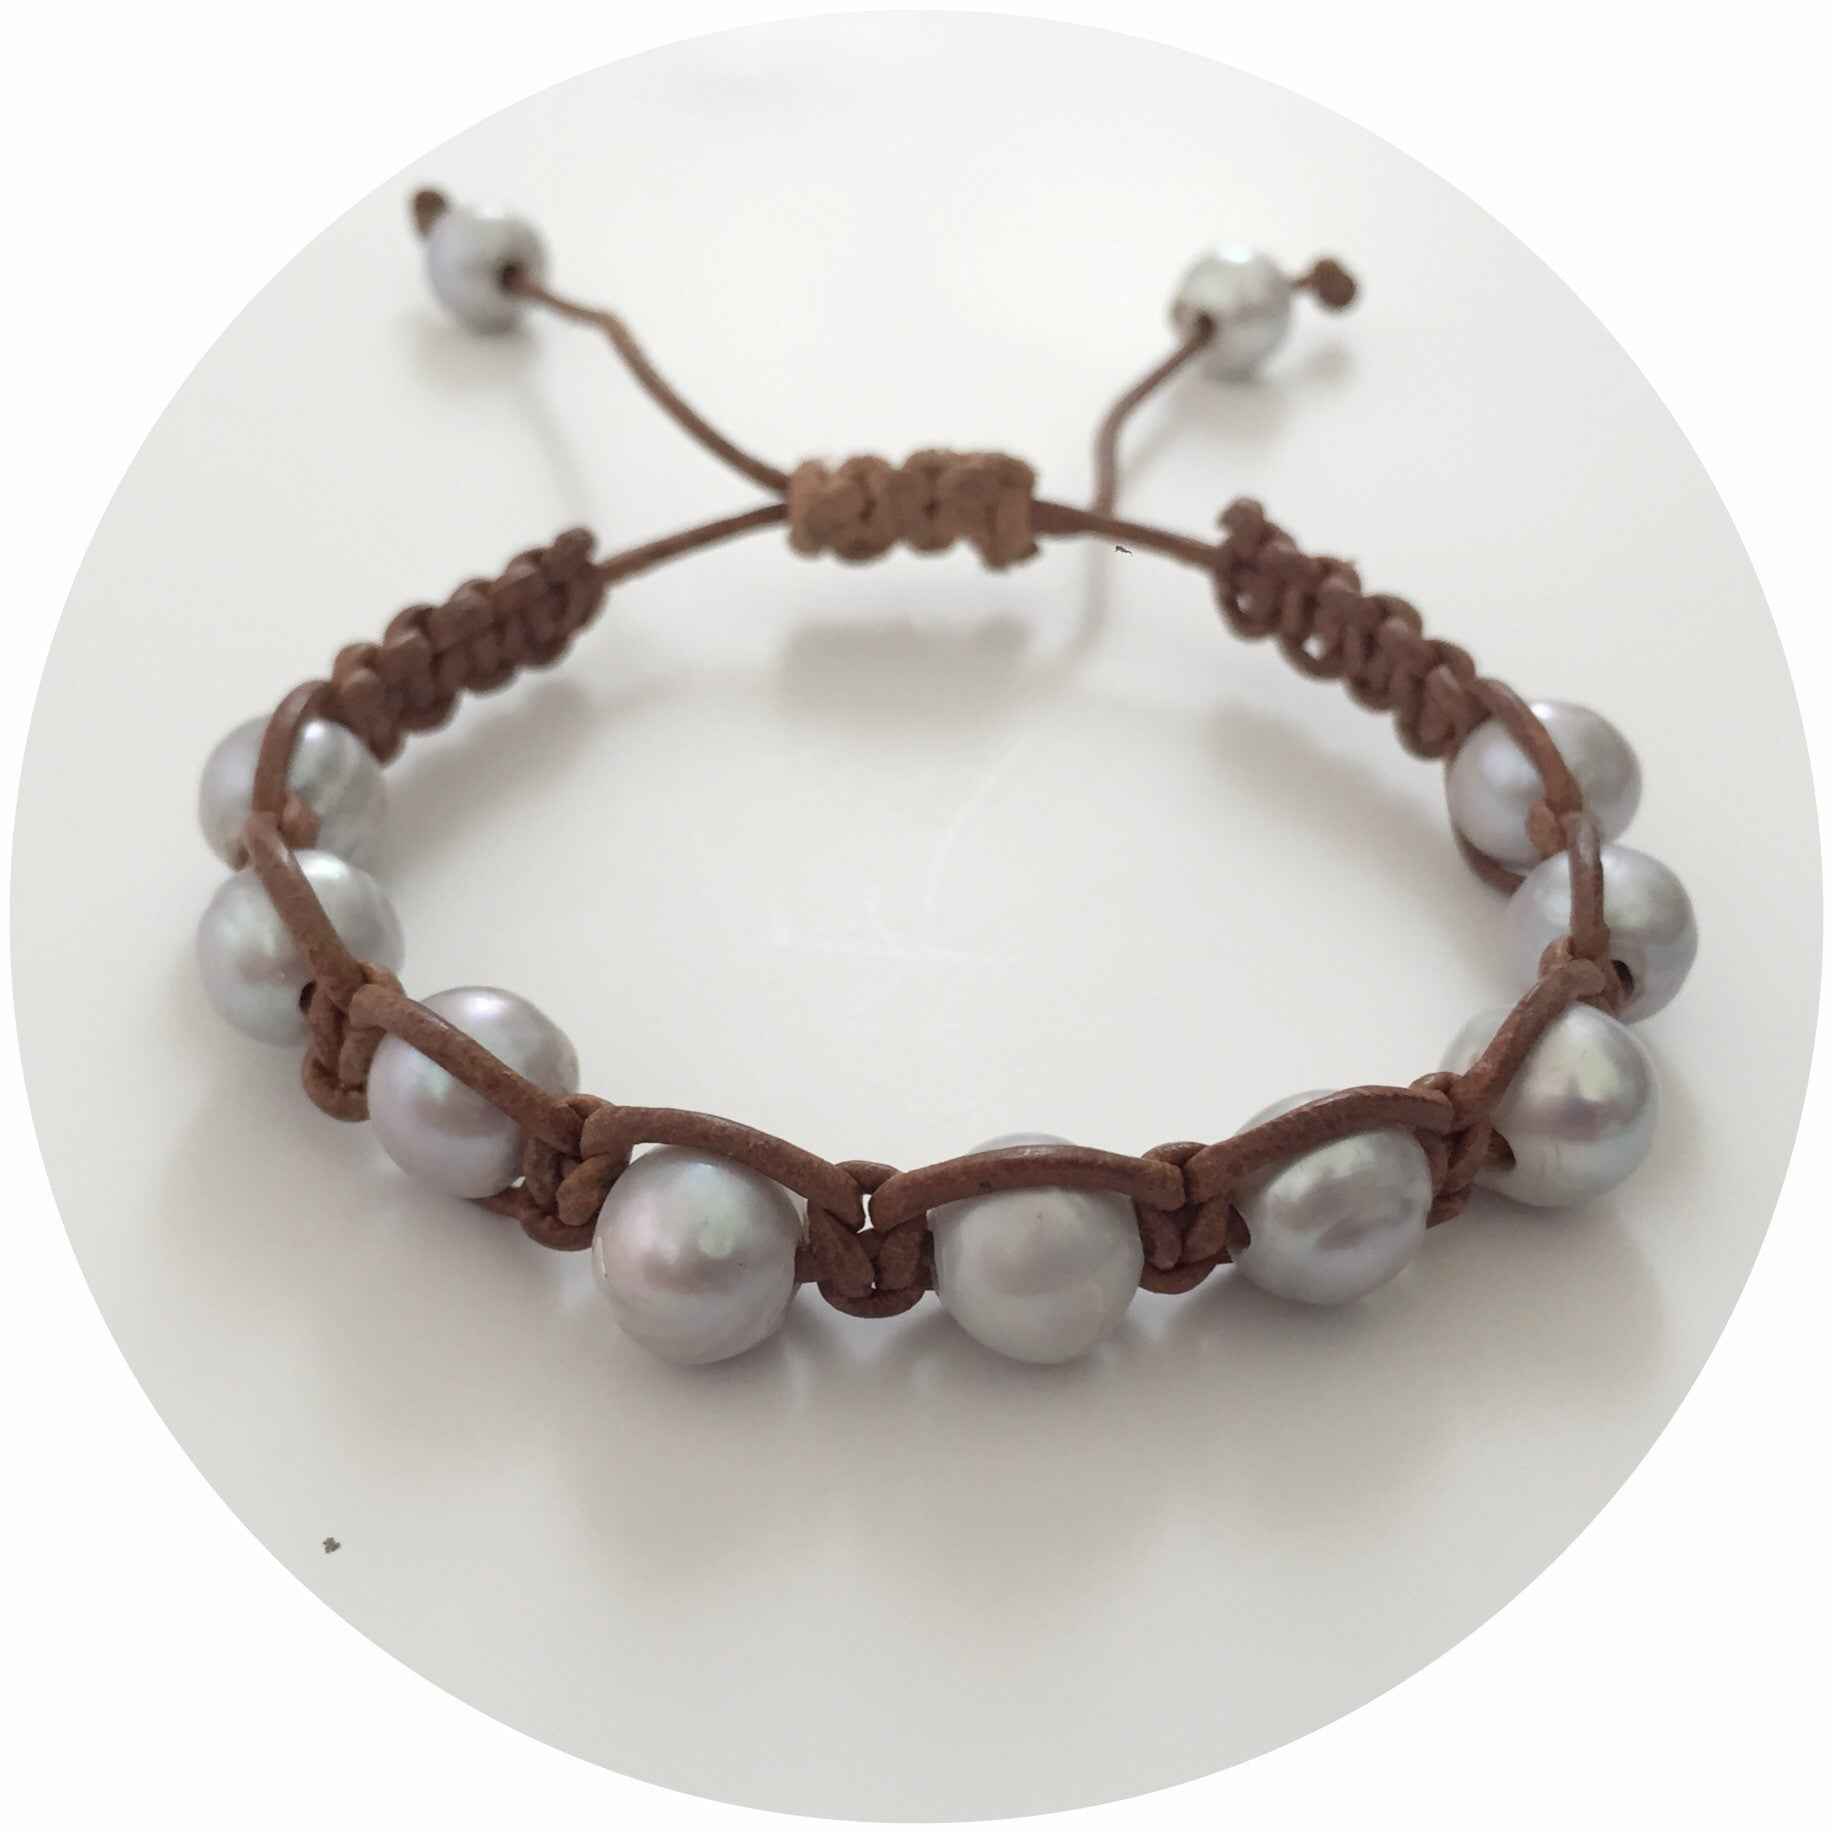 Natural Leather with Silver Pearl Shamballa Bracelet - Oriana Lamarca LLC